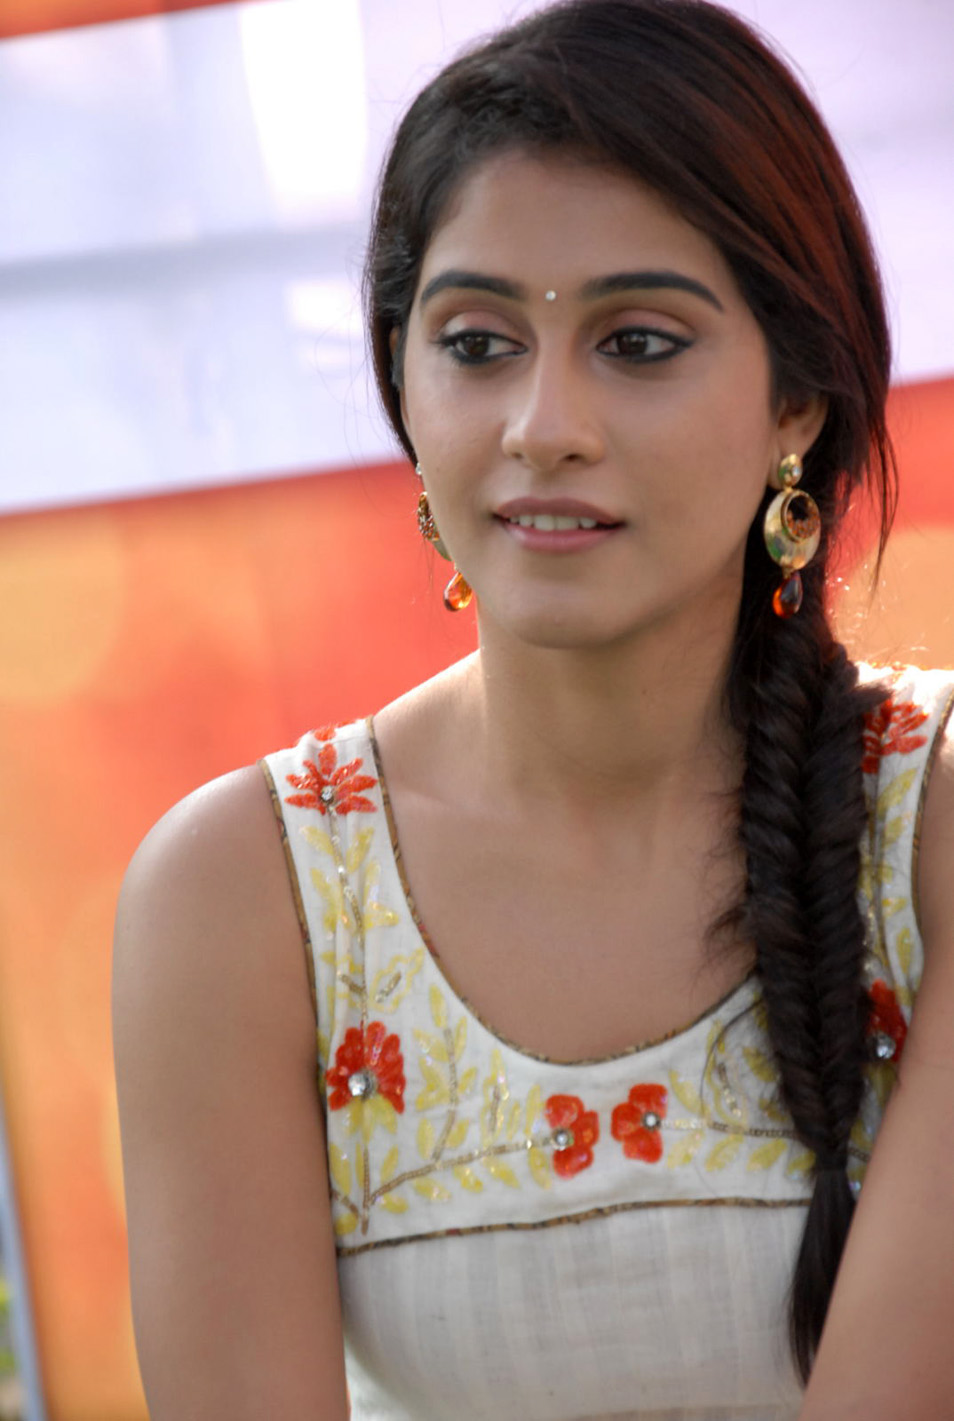 actress regina cassandra wallpapers - Regina Cassandra Photos Images Stills Pics New